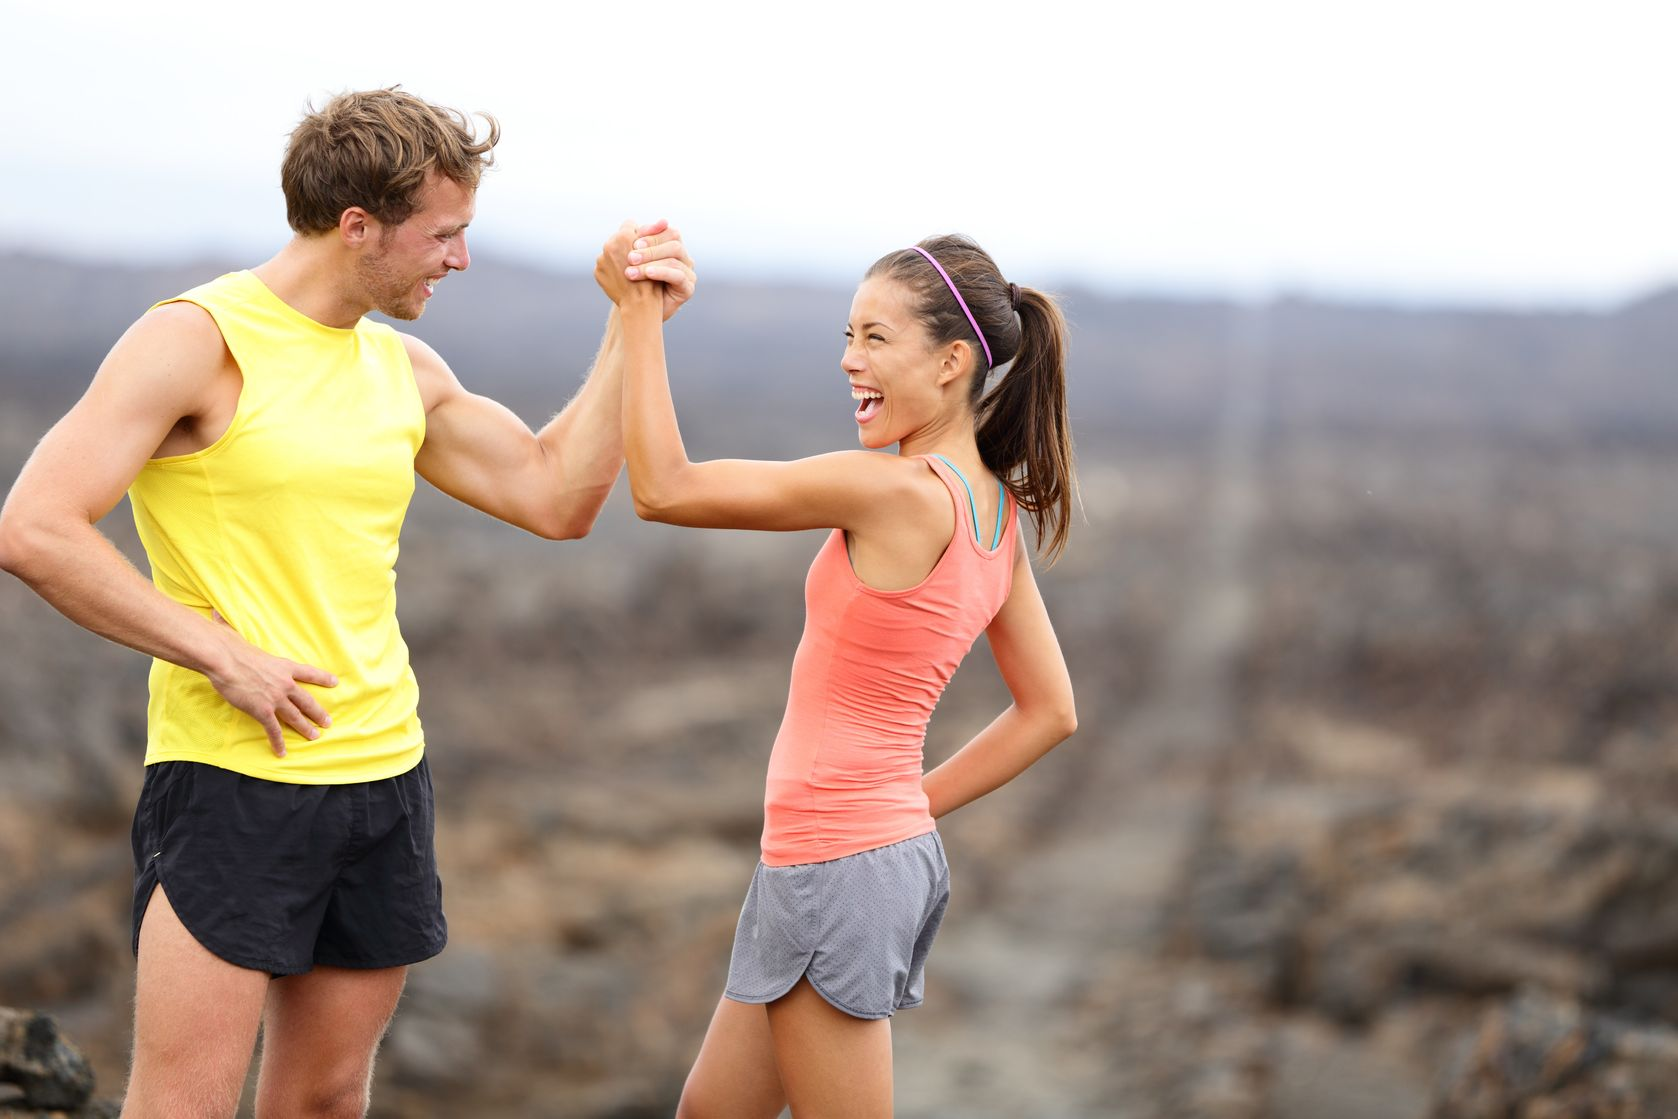 Young fitness couple celebrating